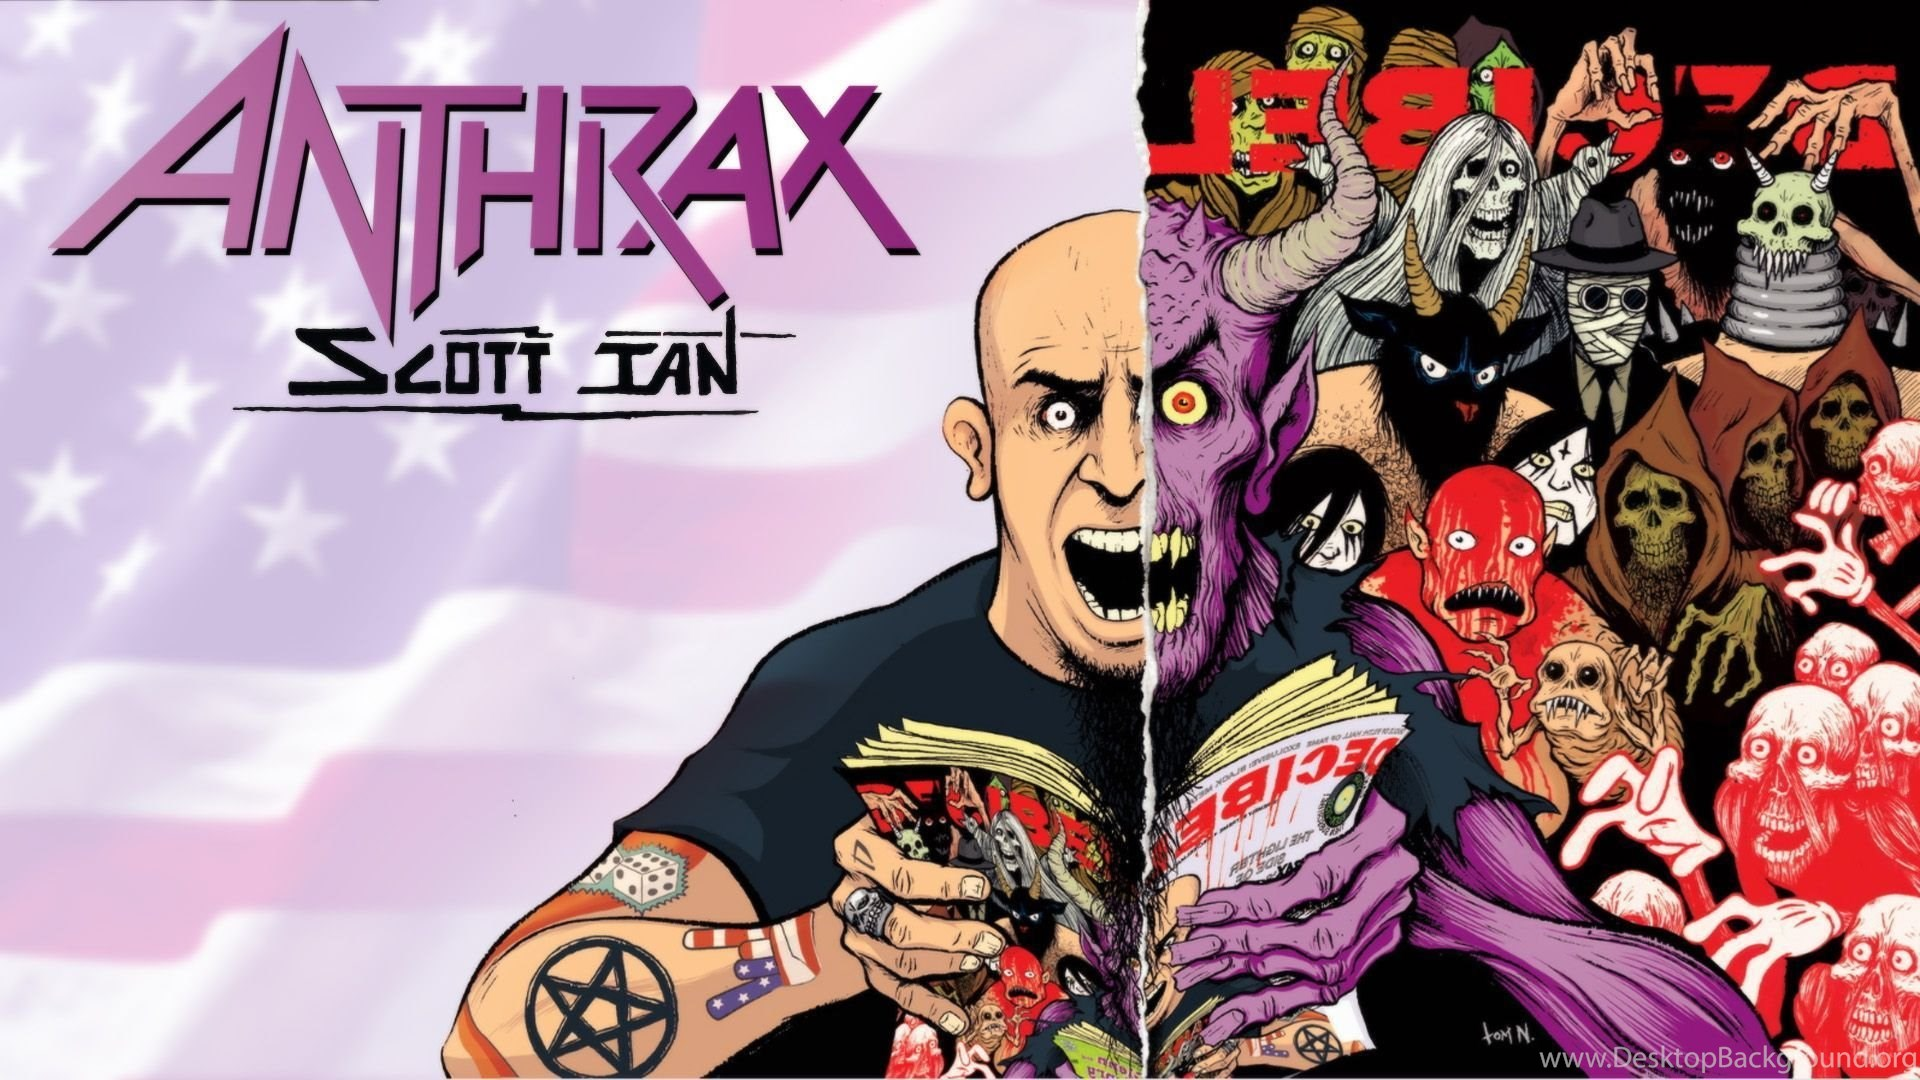 Anthrax Wallpapers and Background Images   stmednet 1920x1080